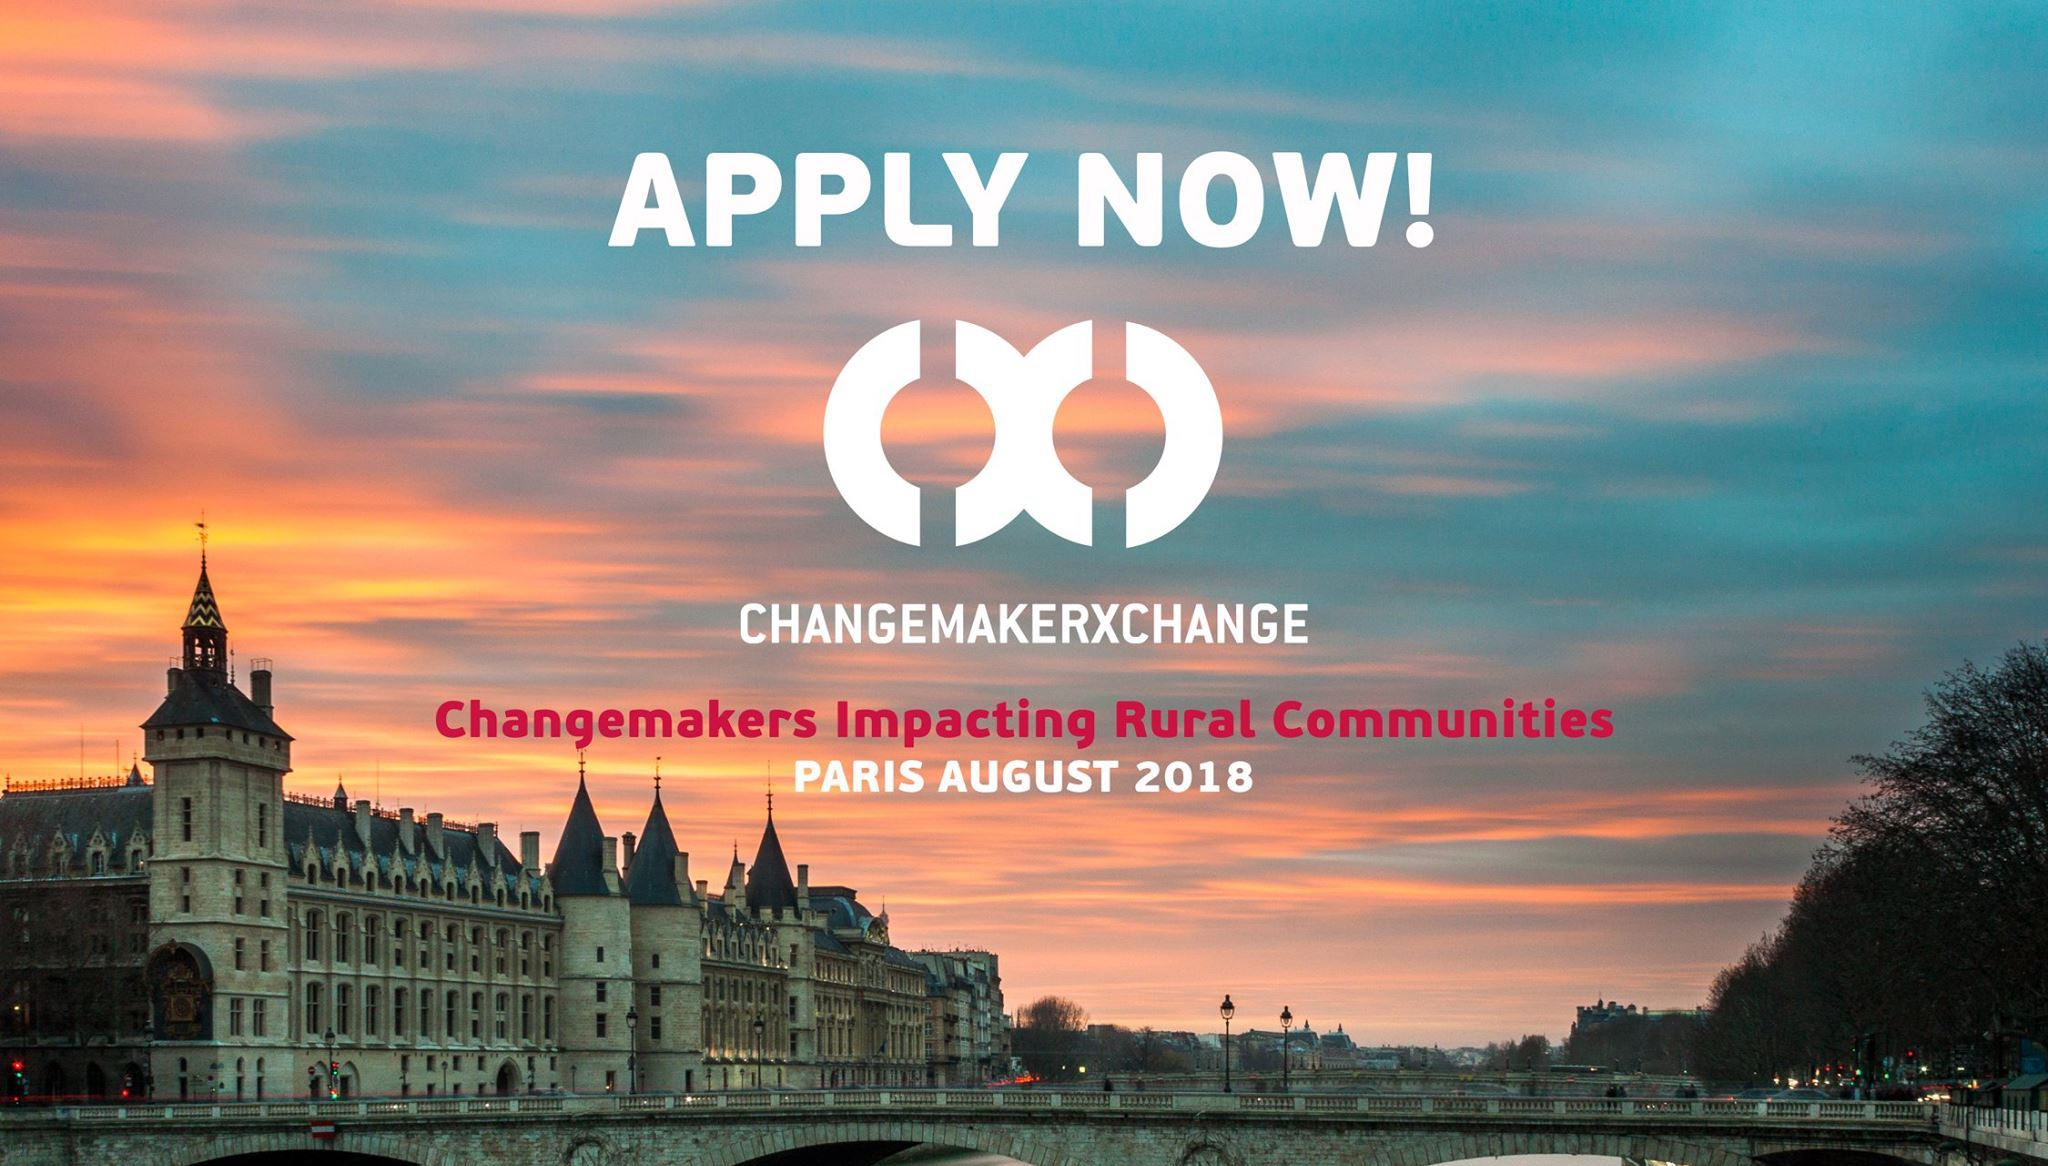 Ashoka ChangemakerXchange Summit 2018 in Paris, France (Changemakers Impacting Rural Communities)